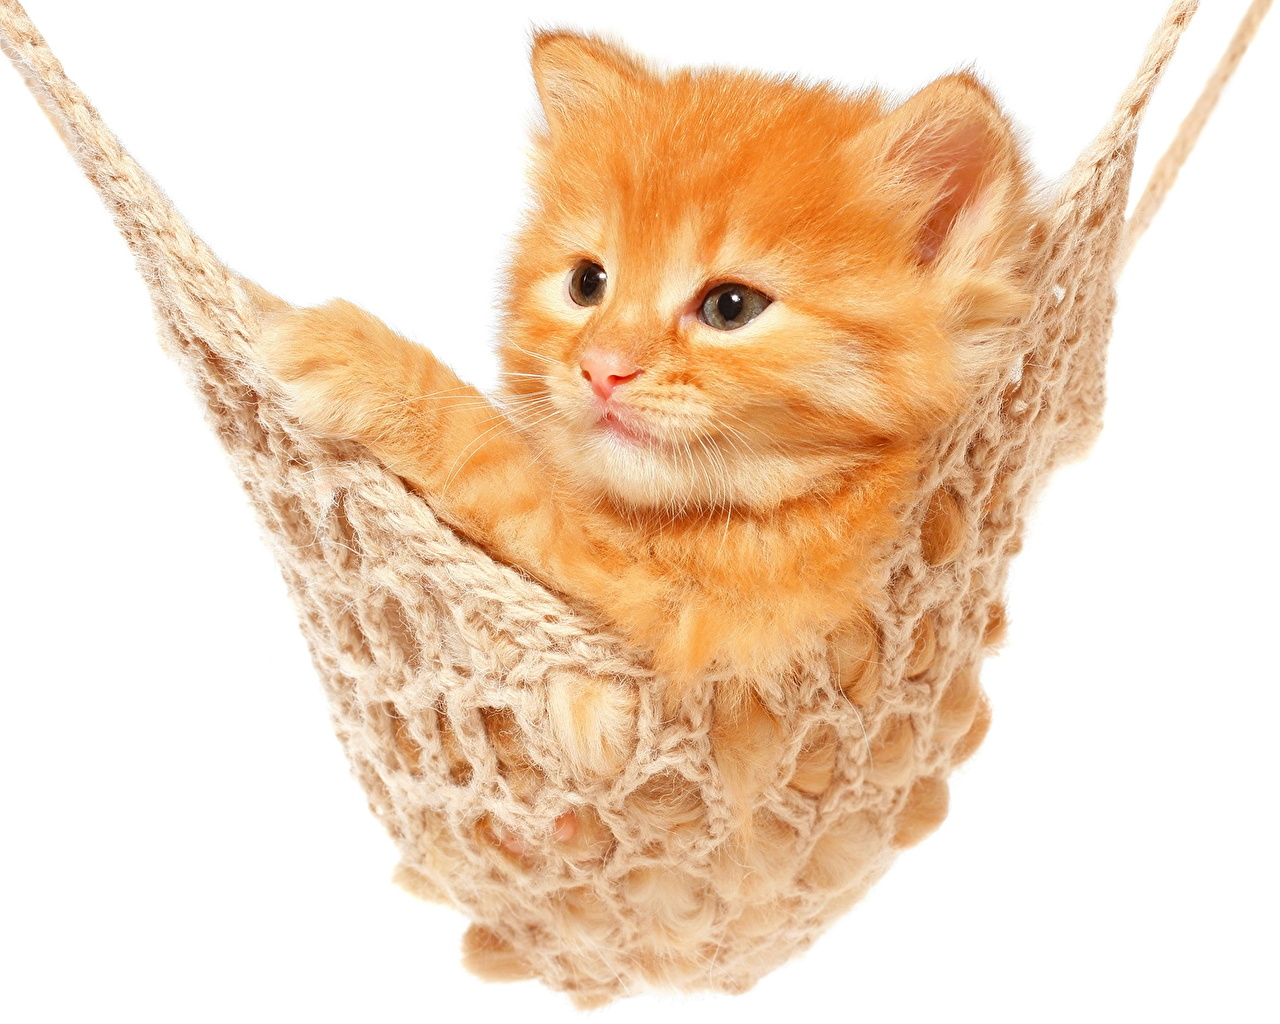 Wallpaper Kitty Cat Cats Ginger Color Animal